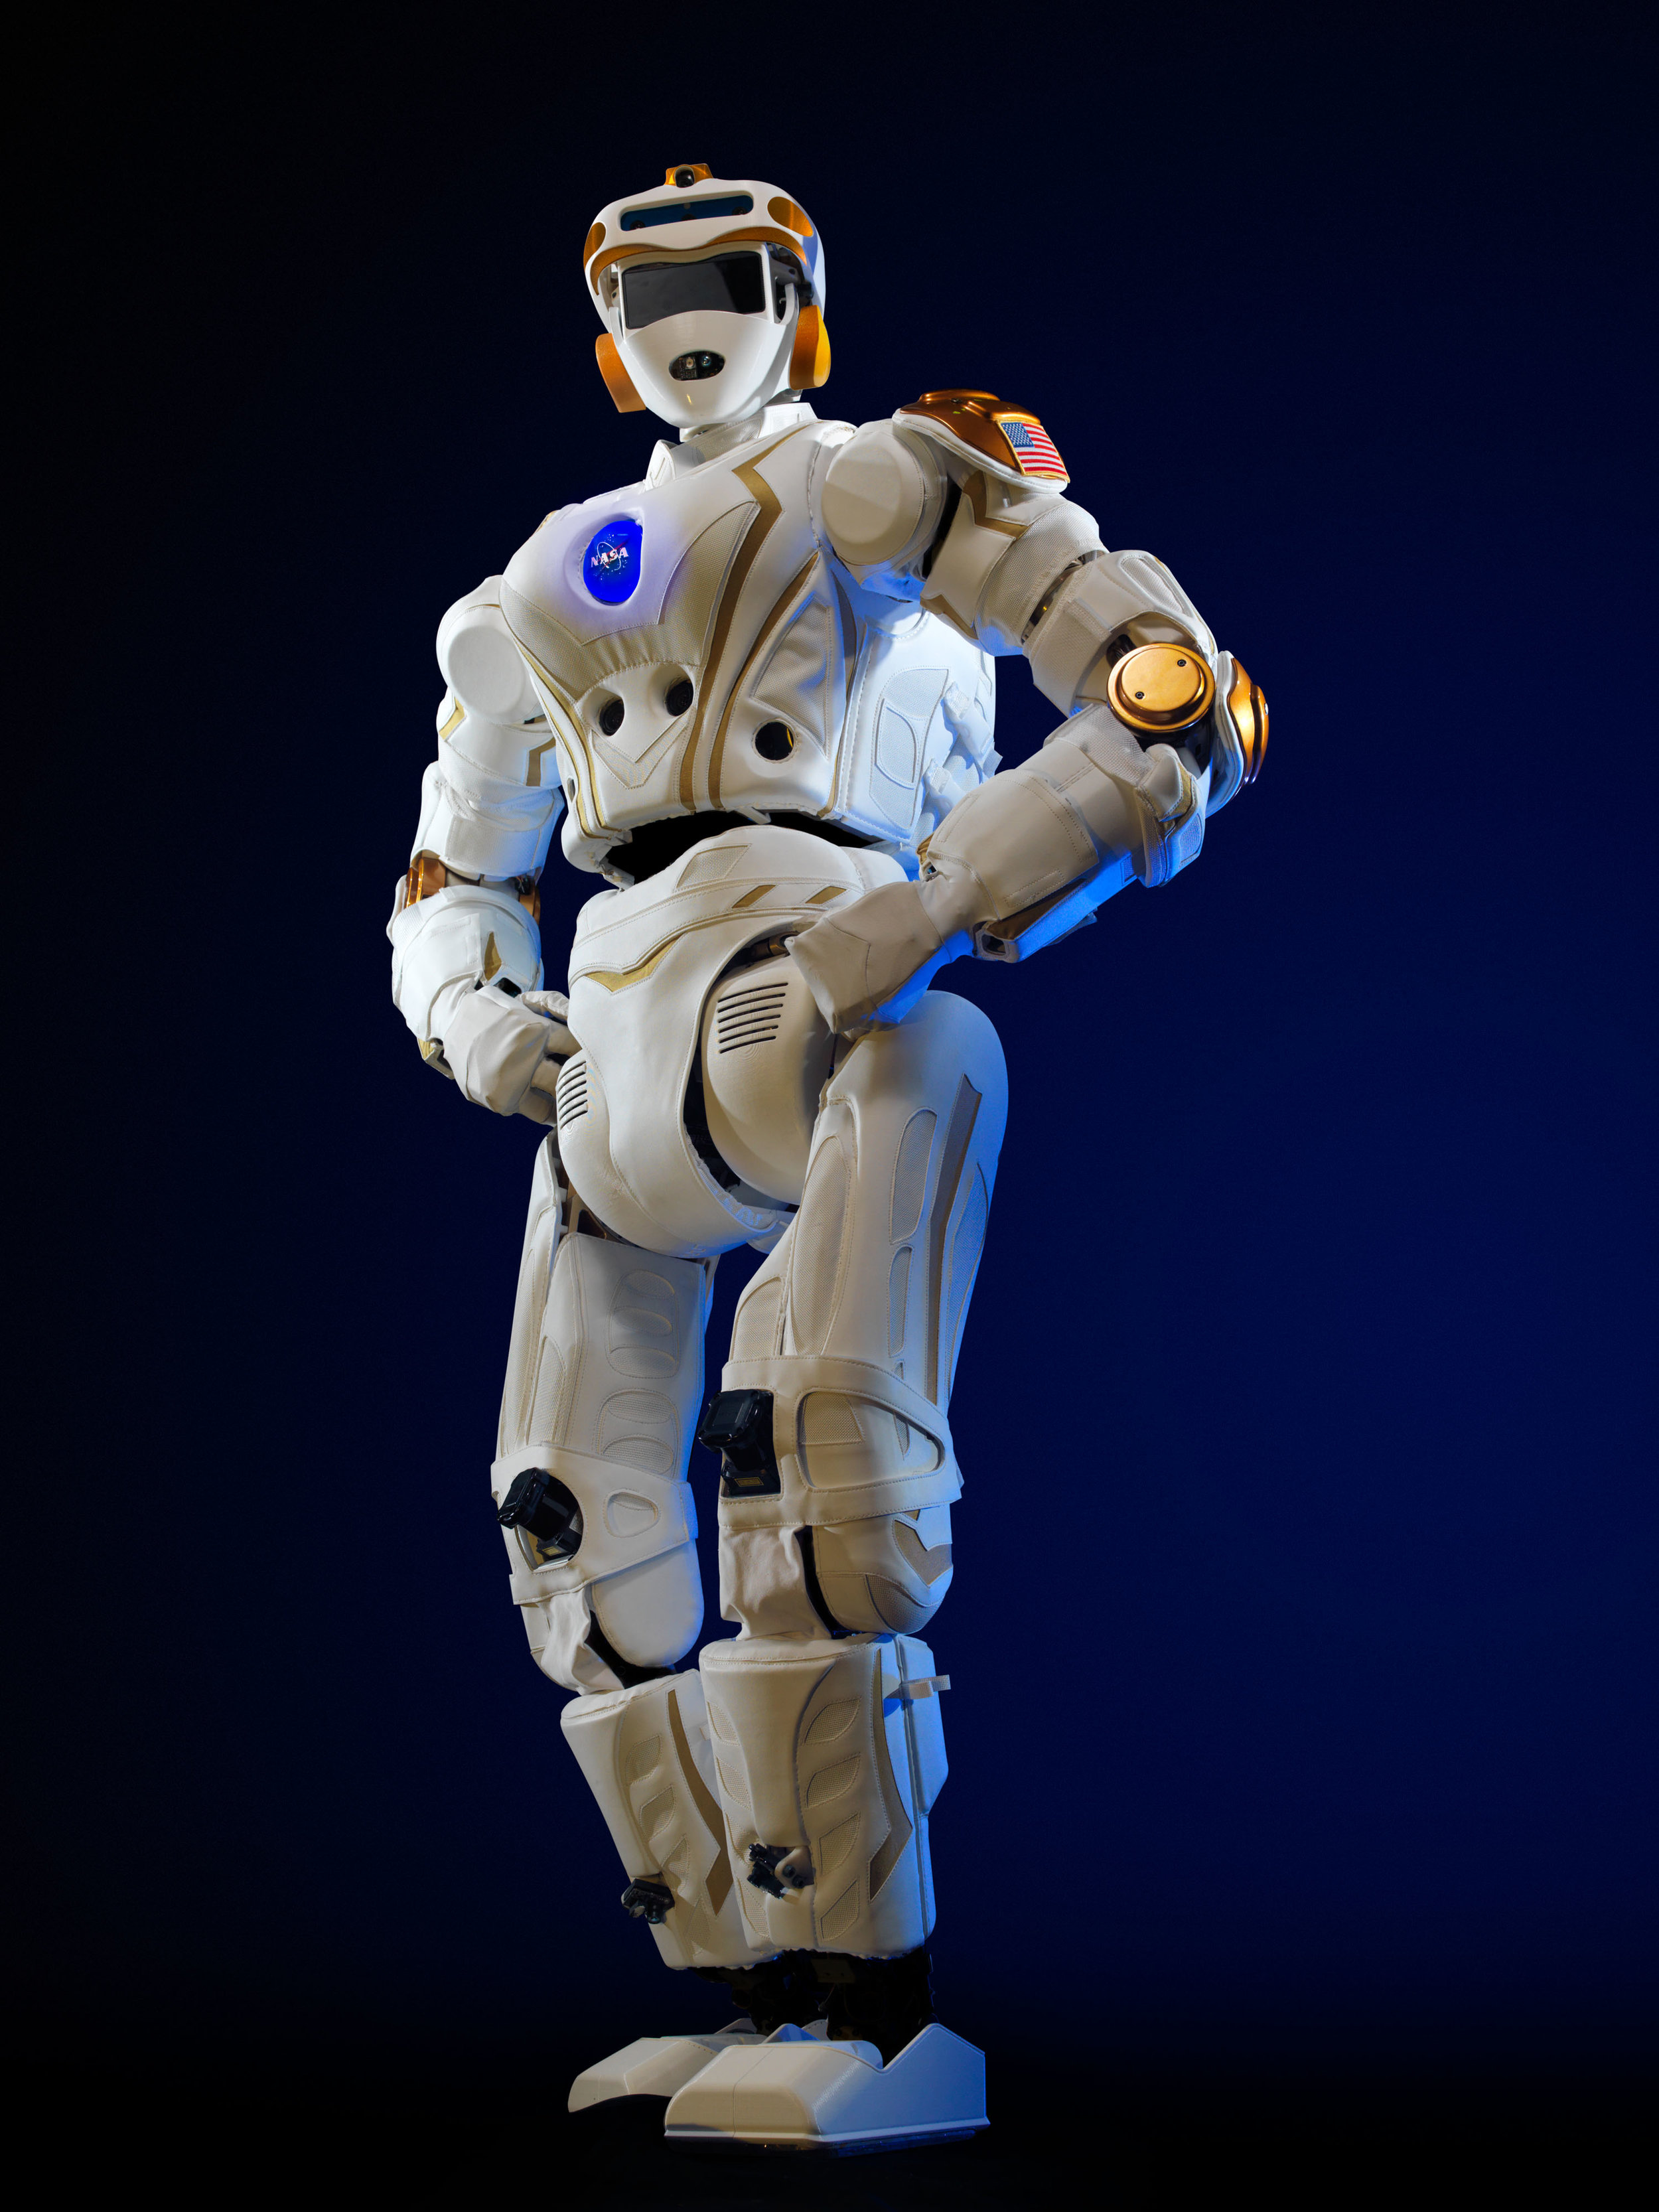 NASA's Valkyrie robot standing proud, and so he should. This is one advanced piece of robotics.  NASA  (public domain)